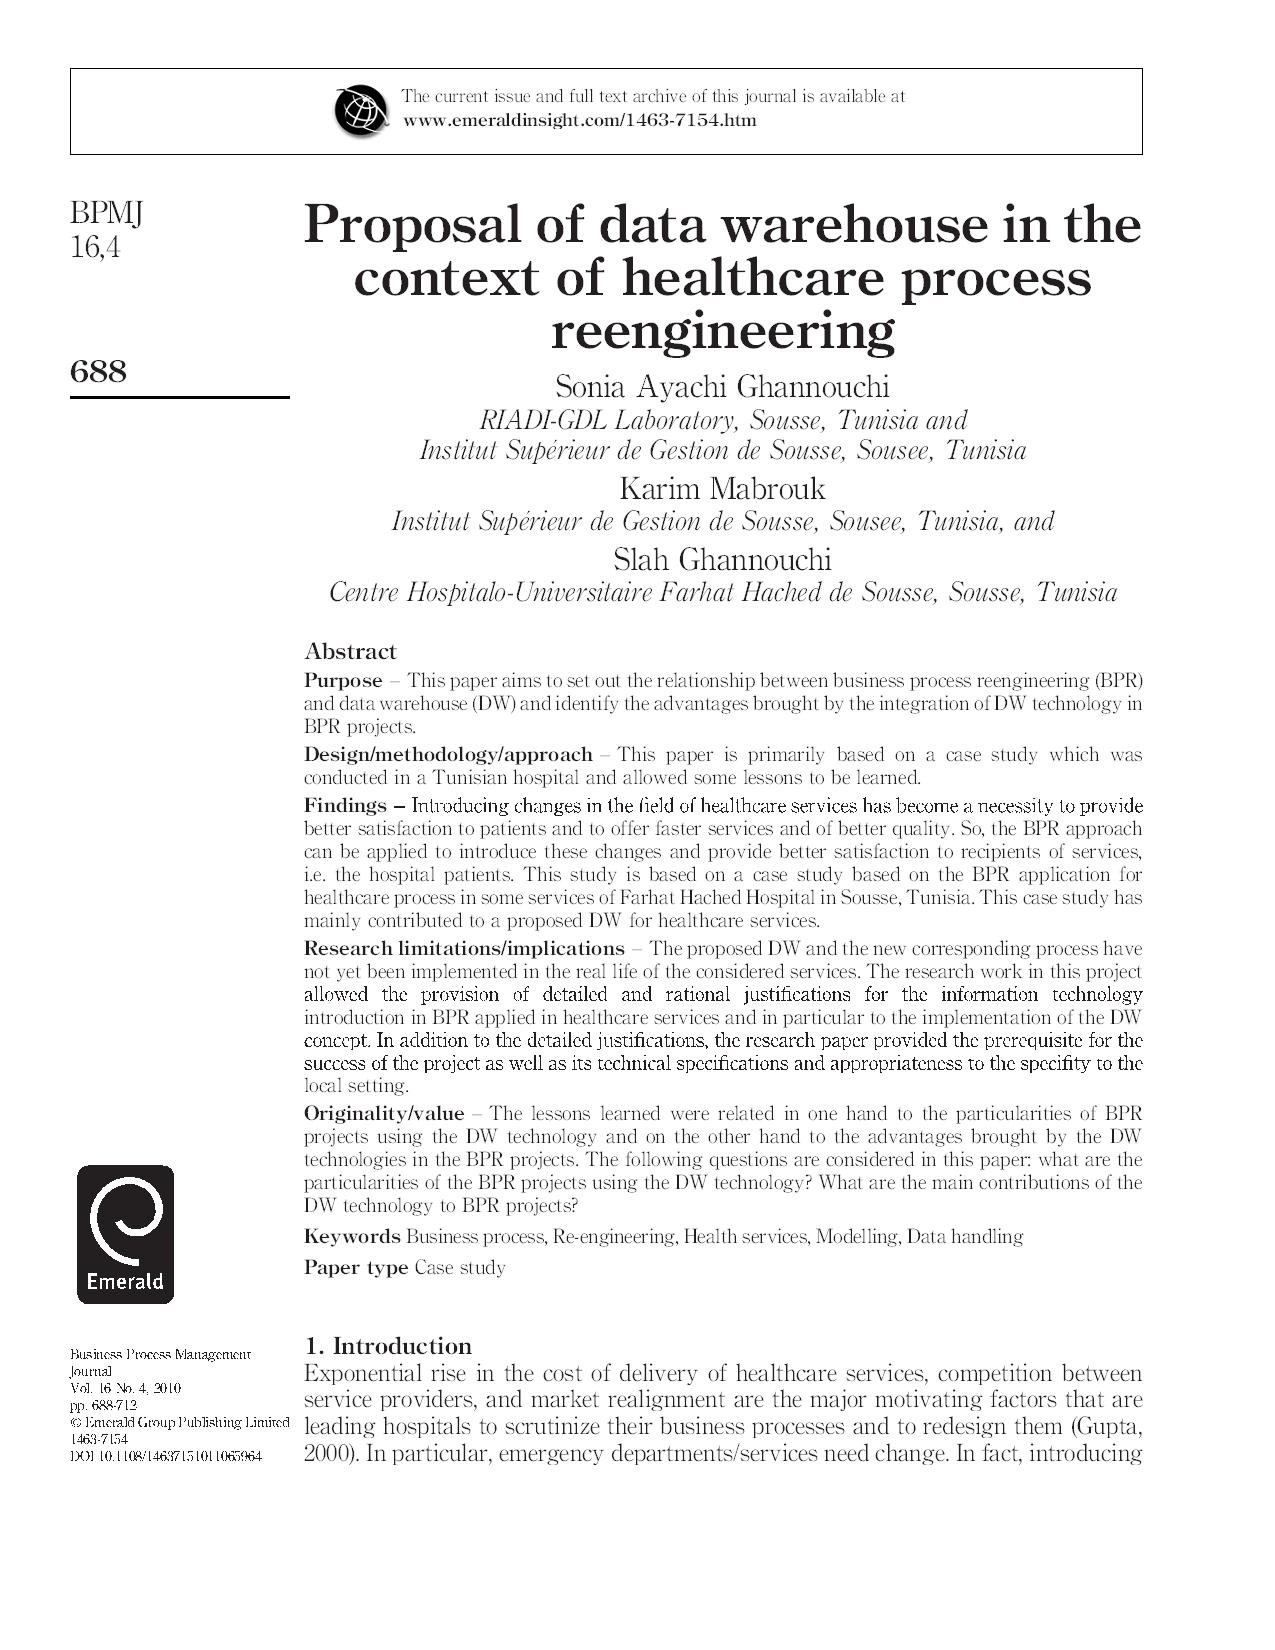 Proposal of data warehouse in the context of healthcare process  reengineering23